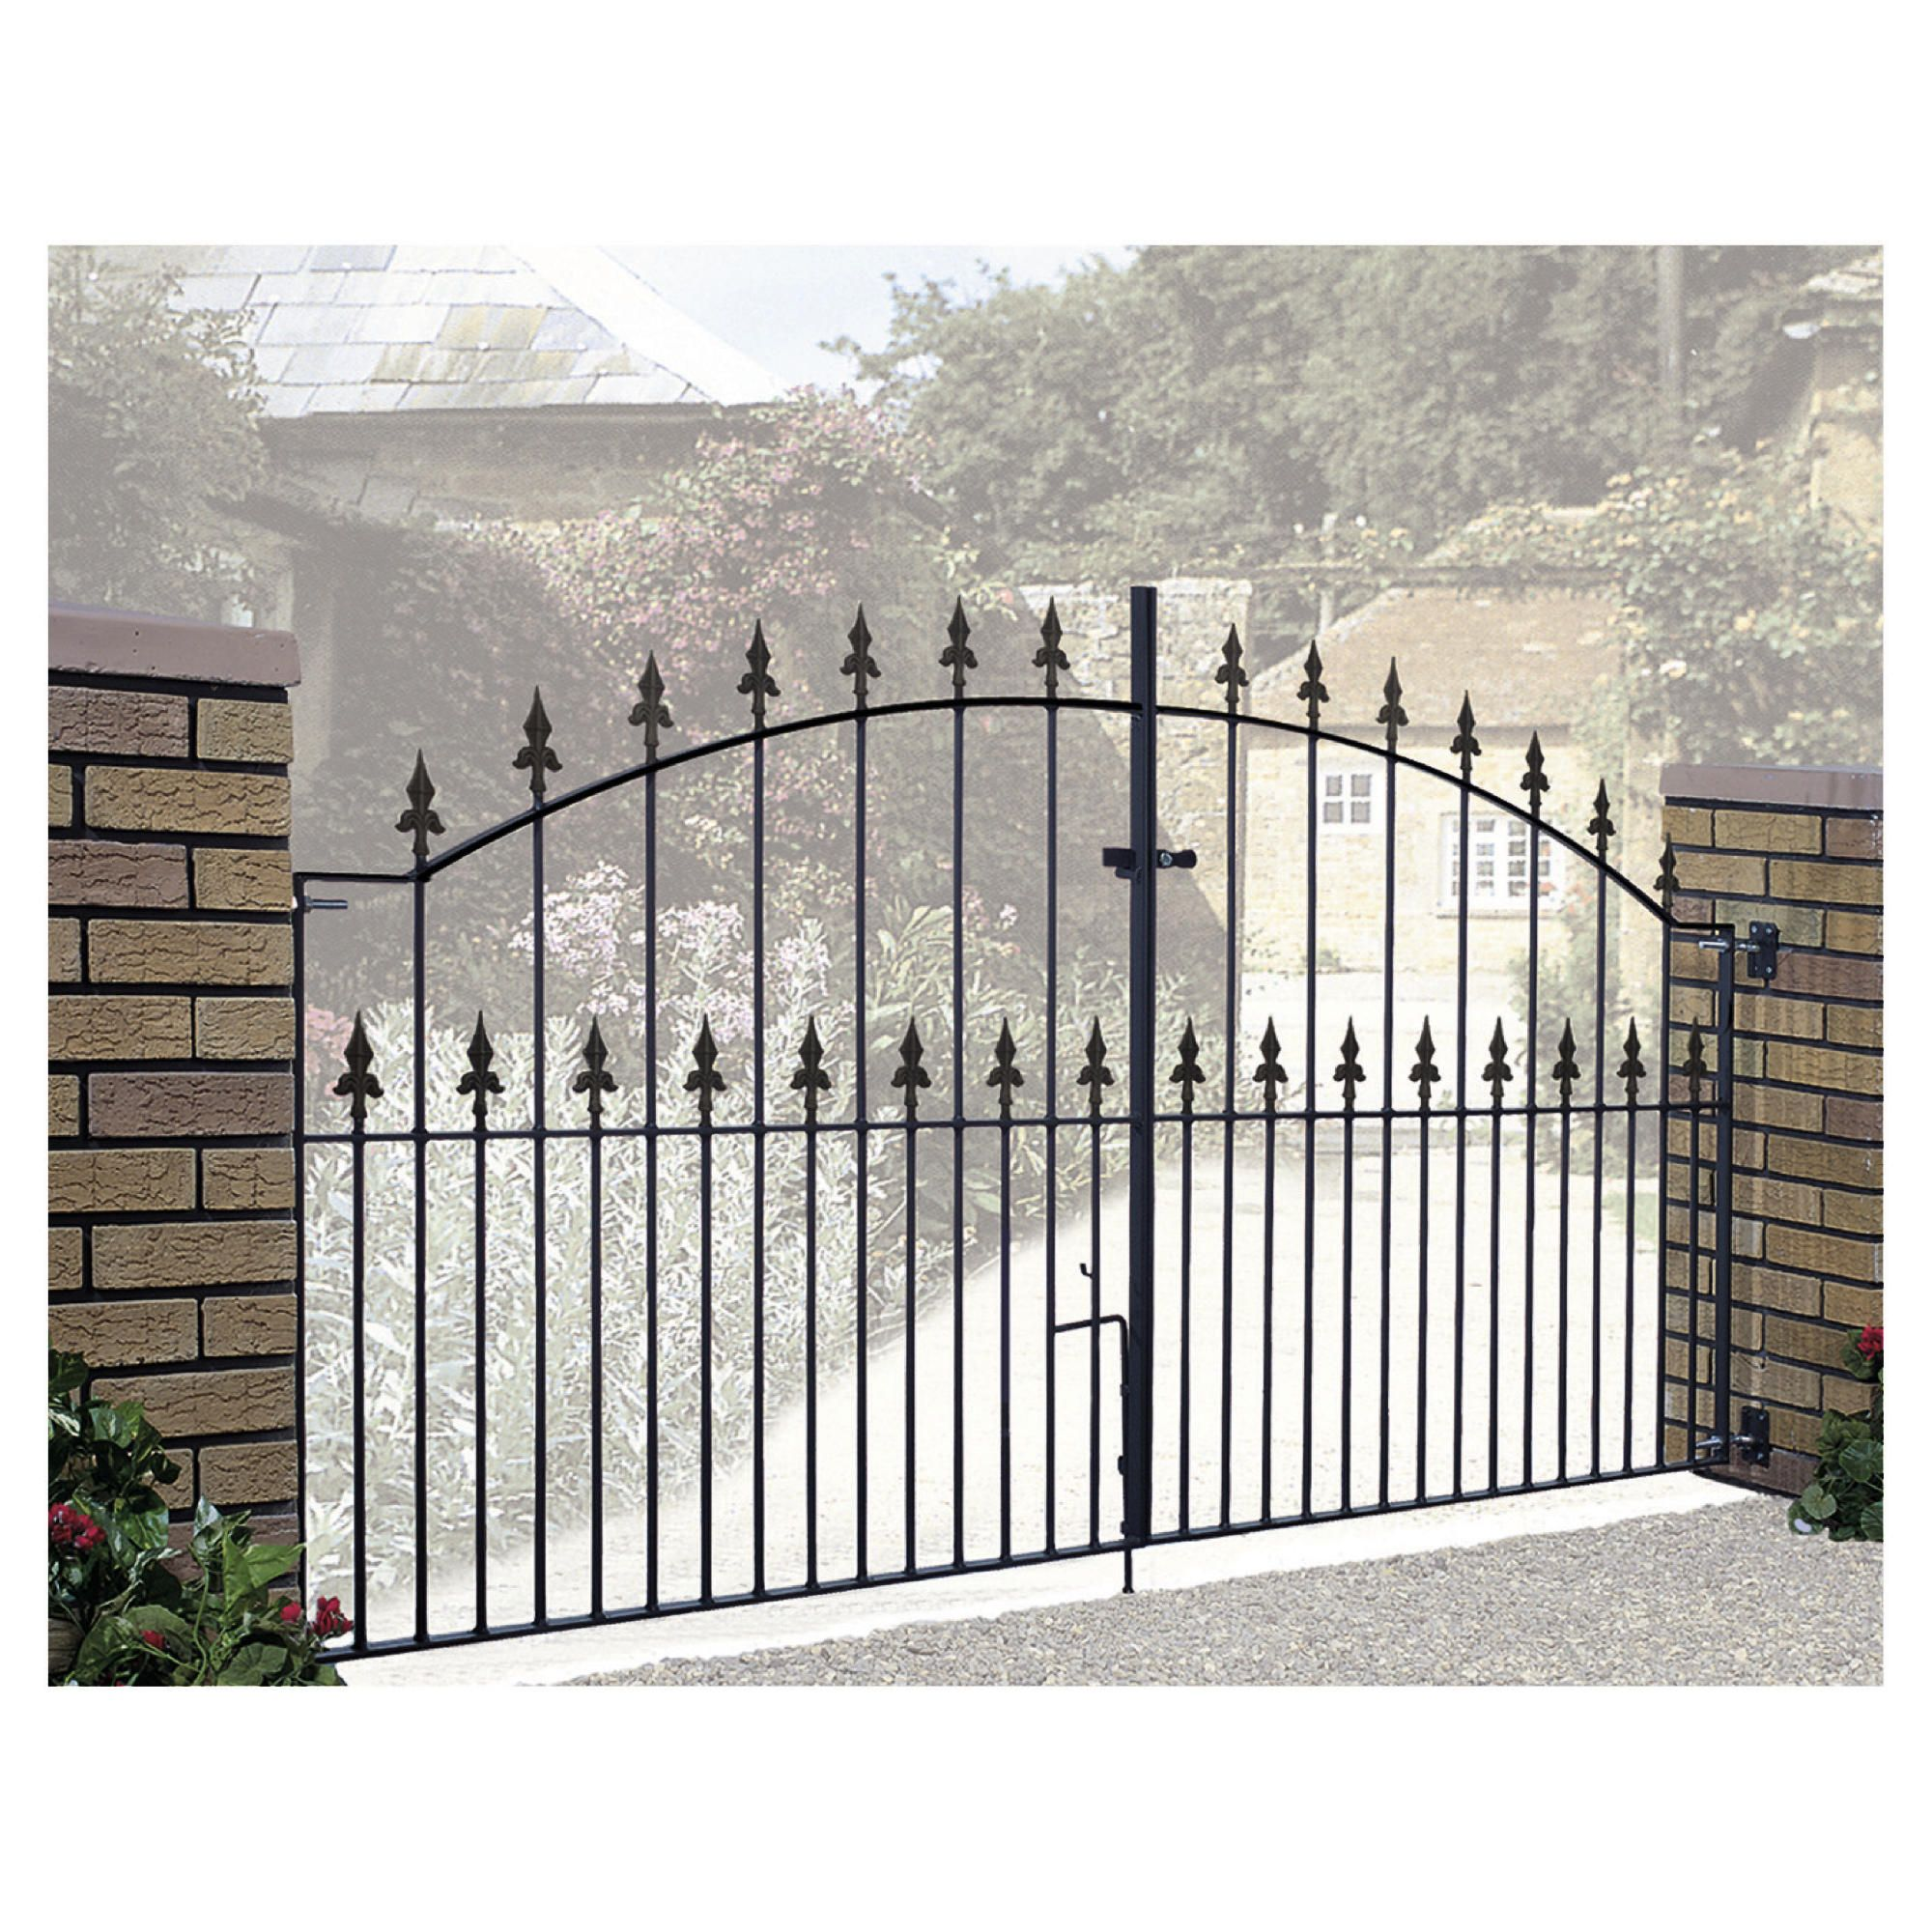 Burbage Saxon Spear Double Metal Gate SA13 at Tesco Direct